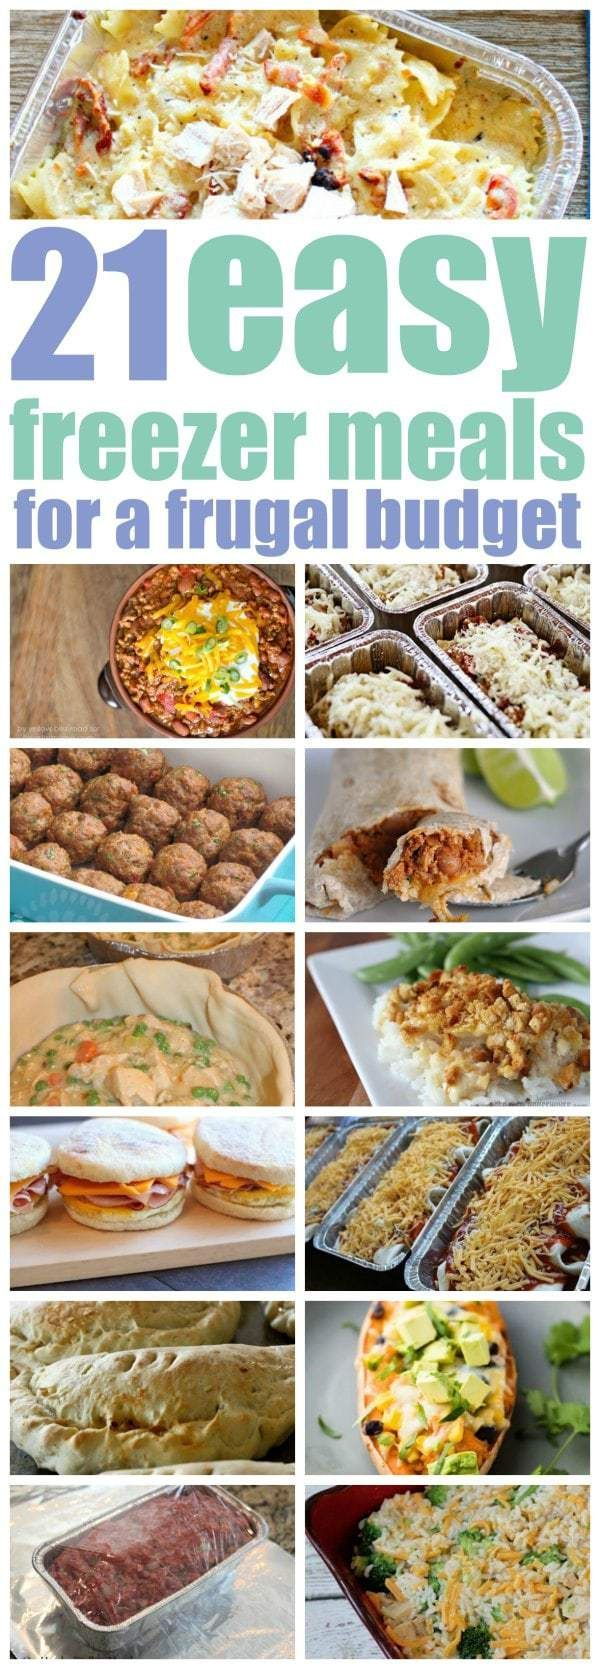 Easy Freezer Meals for a Frugal Budget